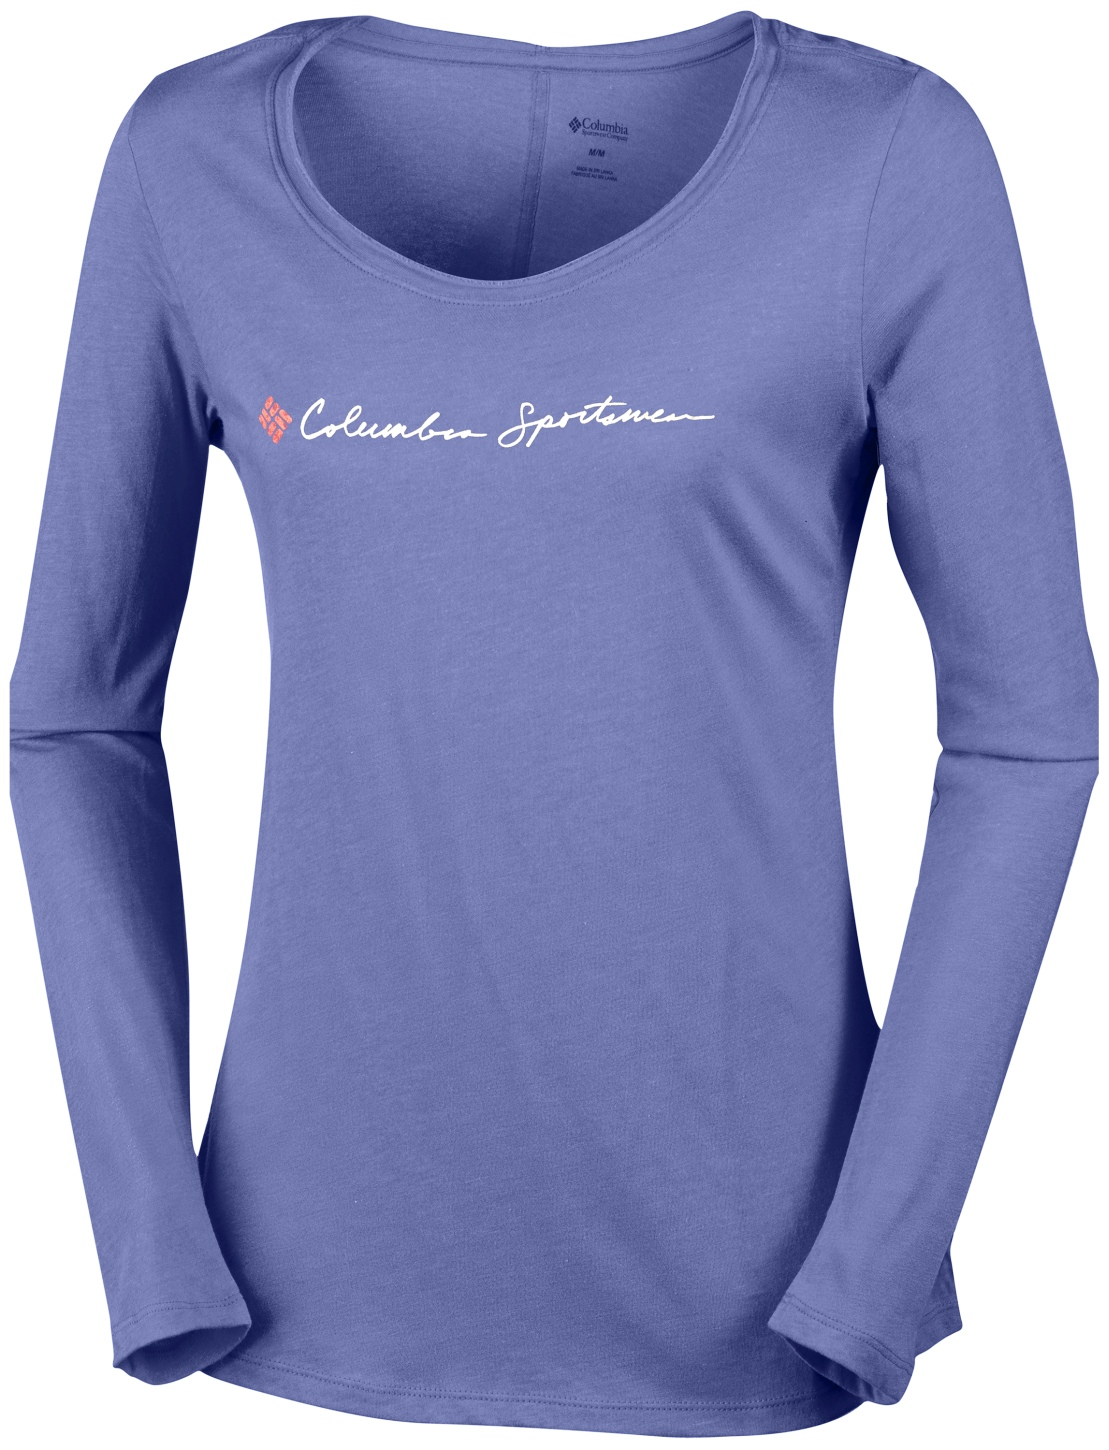 Columbia Women's CSC Script Logo Long Sleeve T-shirt Bluebell-30